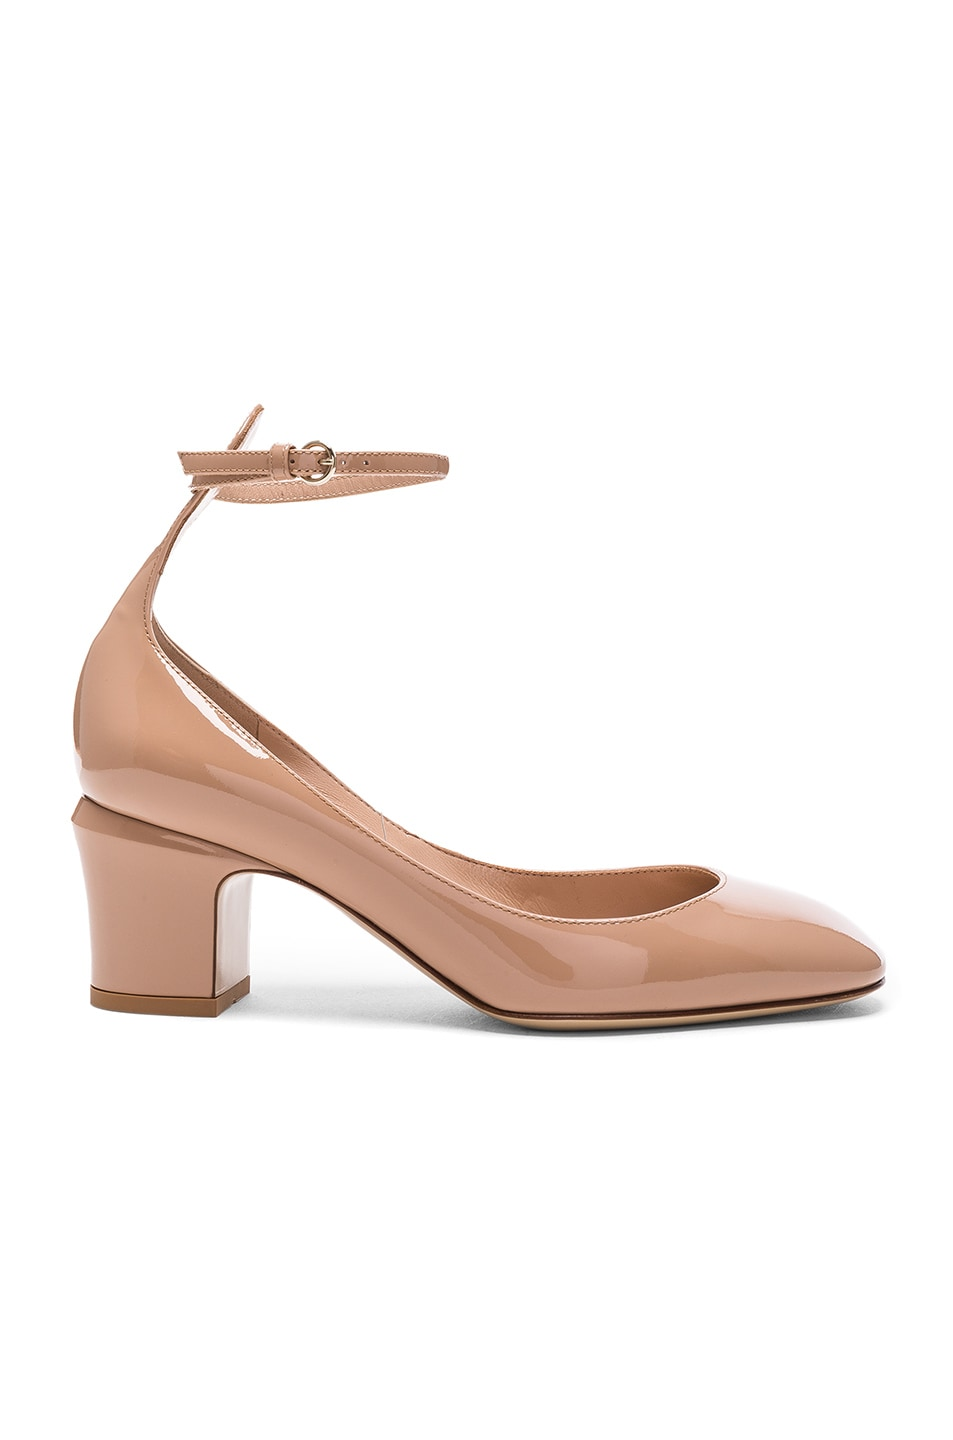 Image 1 of Valentino Patent Leather Tan-Go Pumps in Soft Noisette